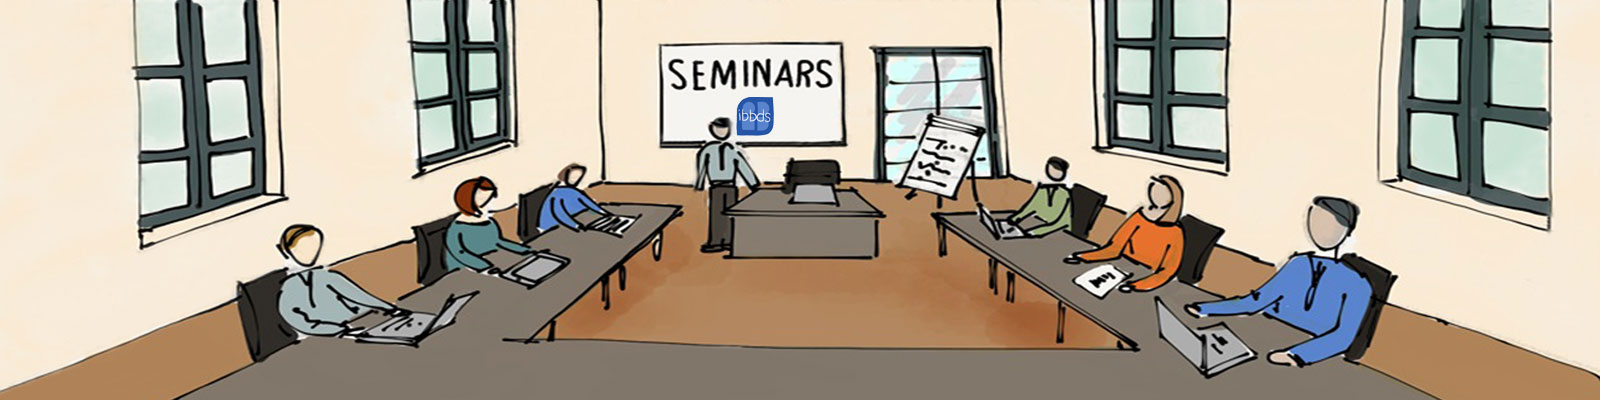 Seminars Solutions by ibbds